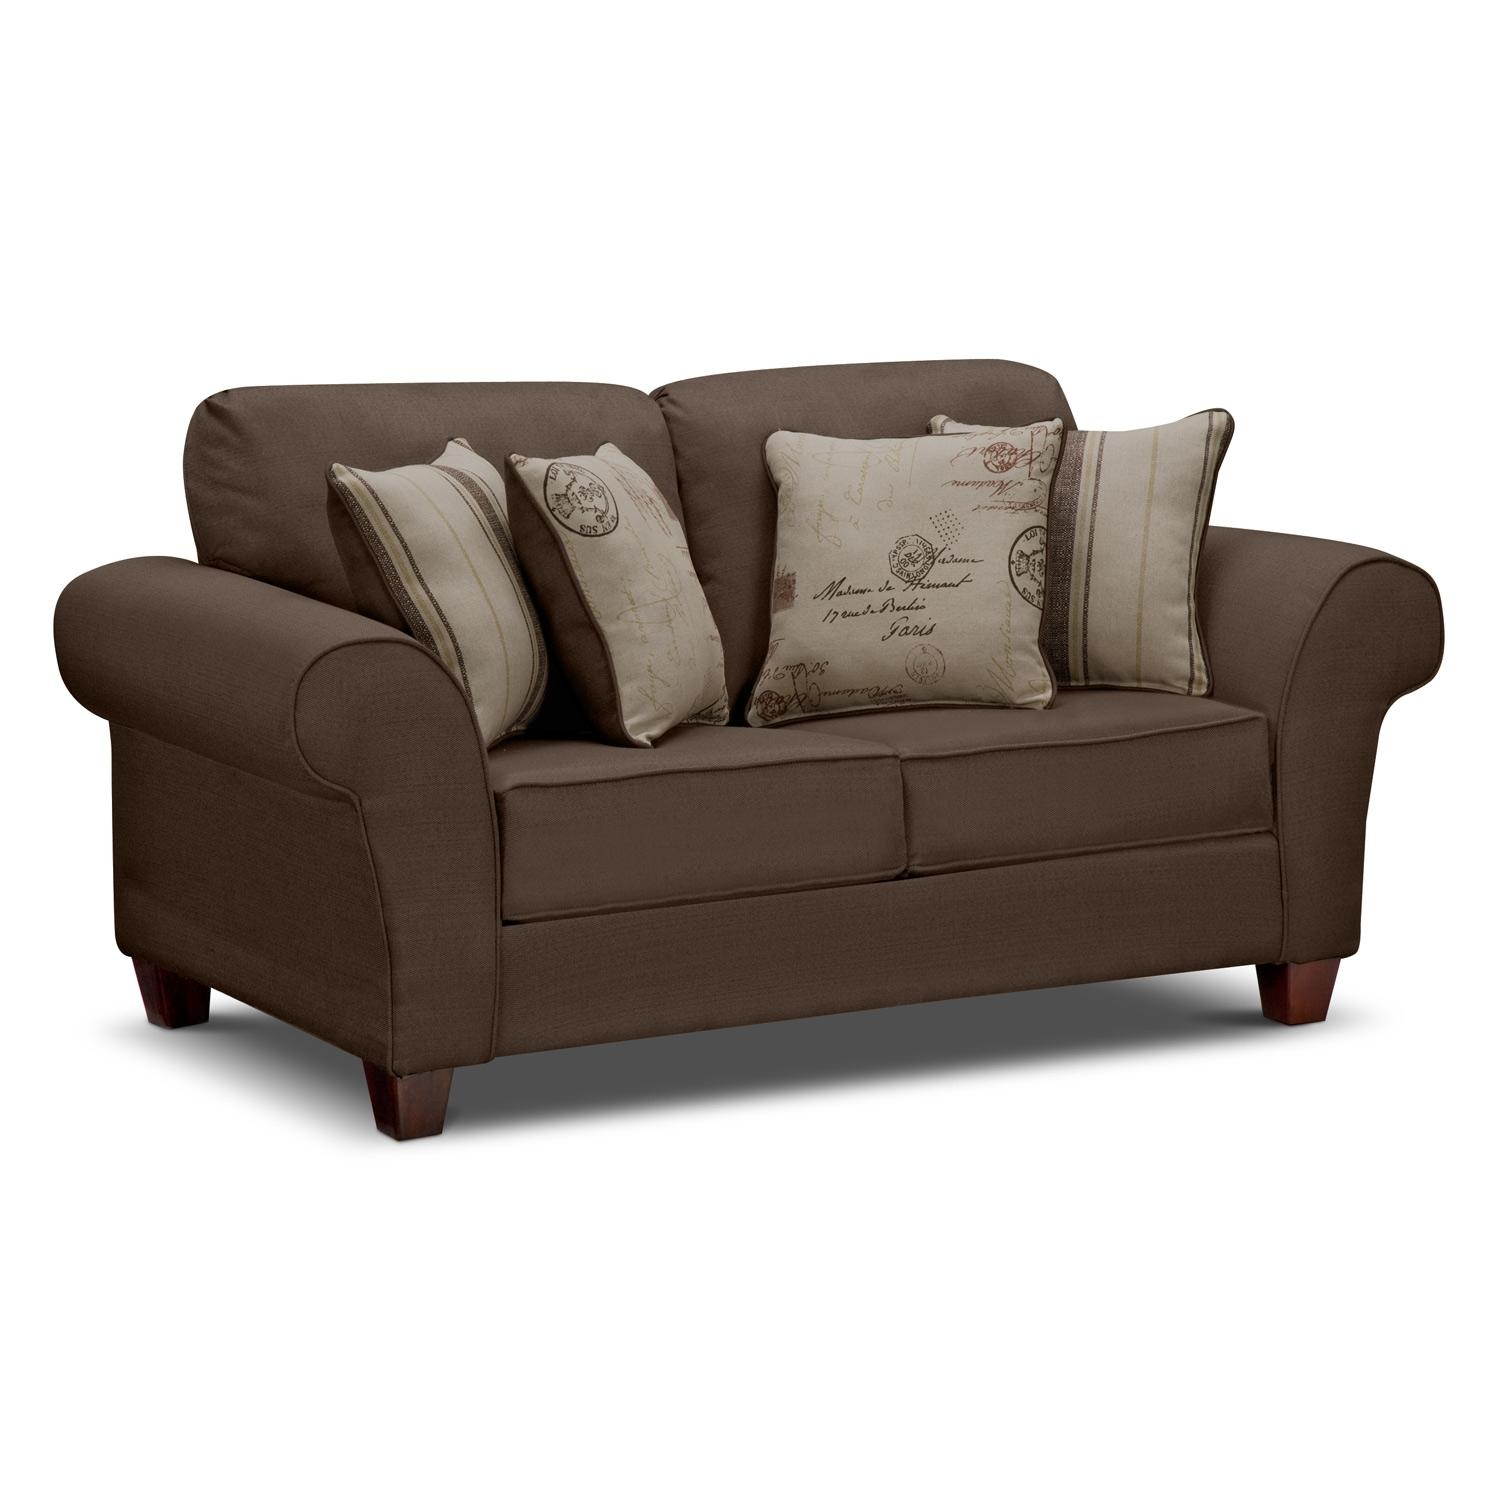 Ikea Uk Living Room Furniture: 20 Best Collection Of Very Small Sofas